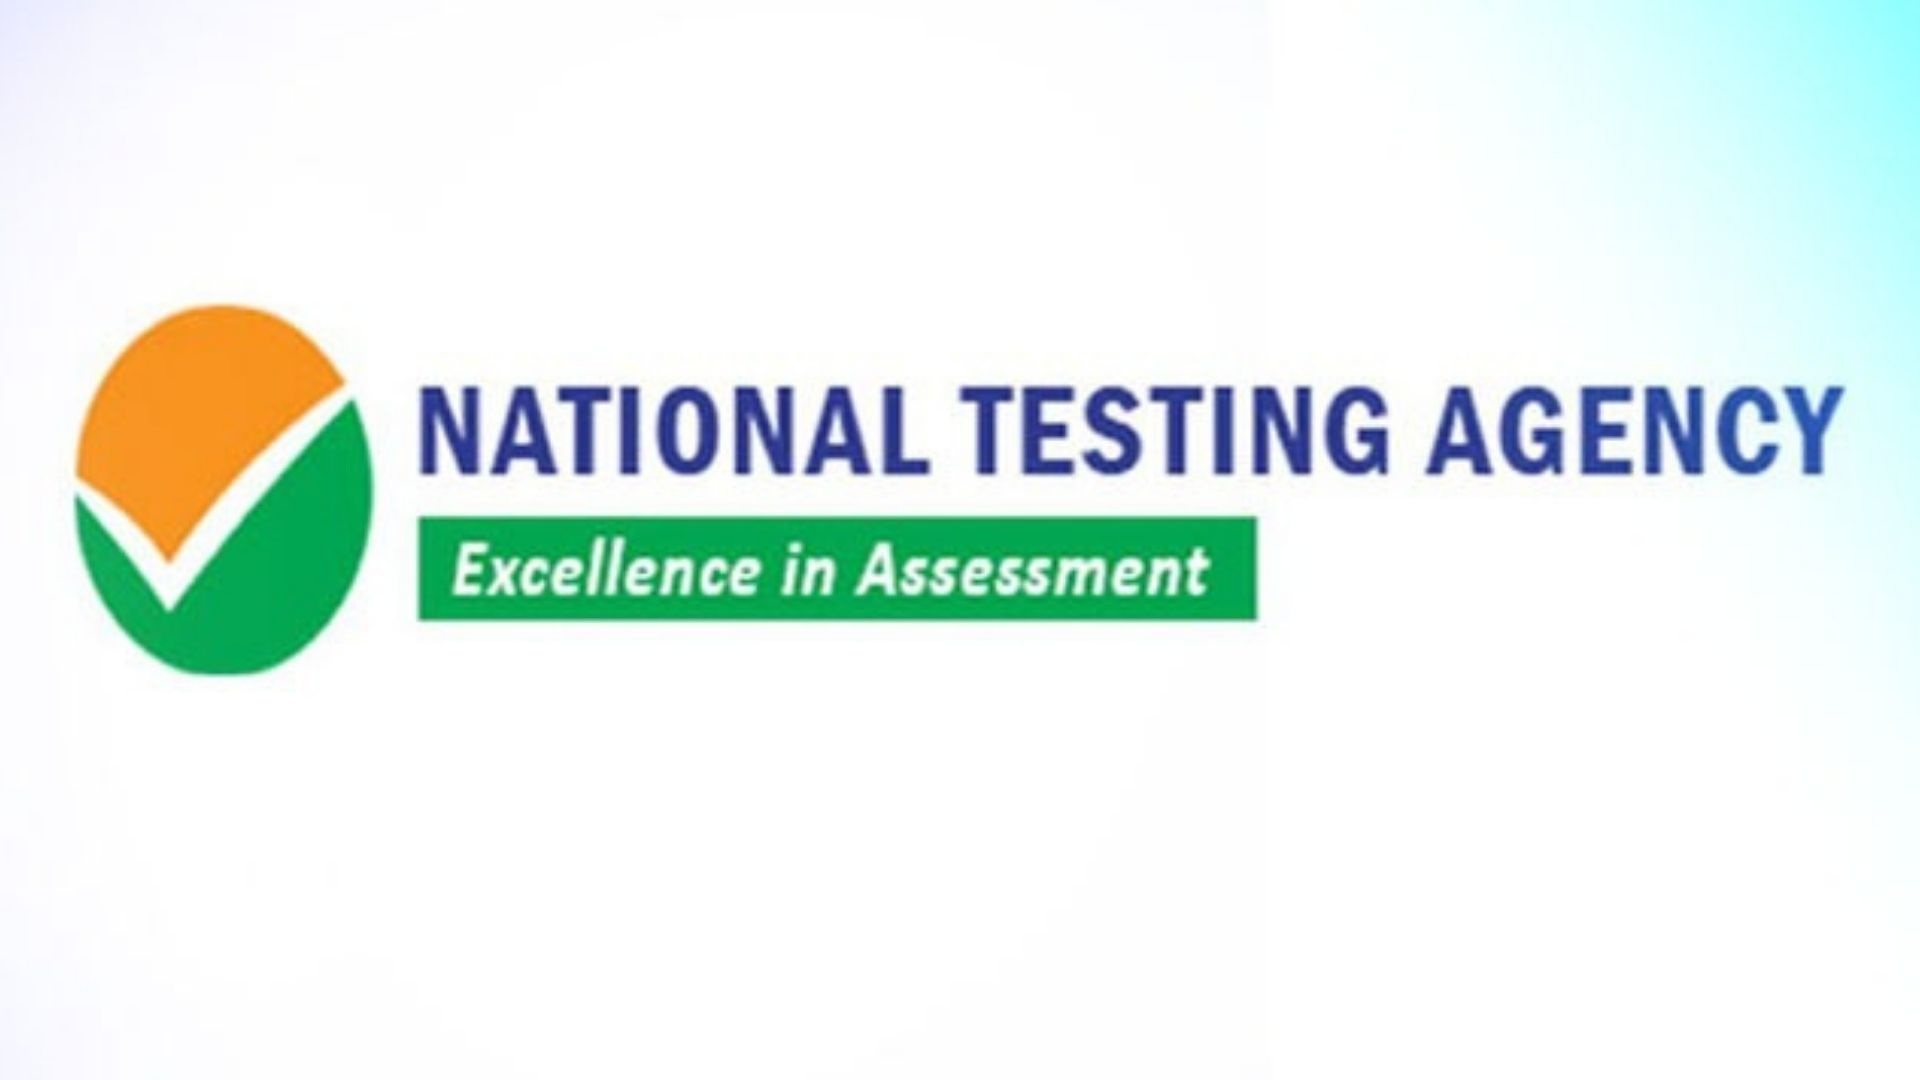 NTA announces JEE (Main) results in record time of just 4 days